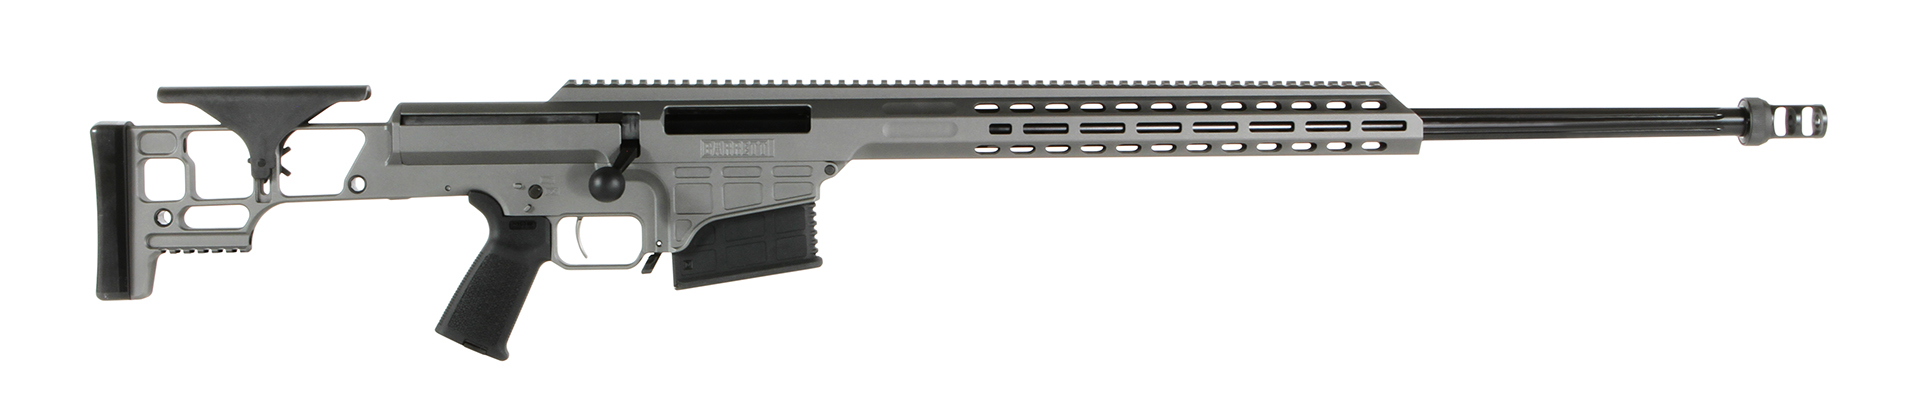 Barrett Firearms MRAD 300 Win Mag